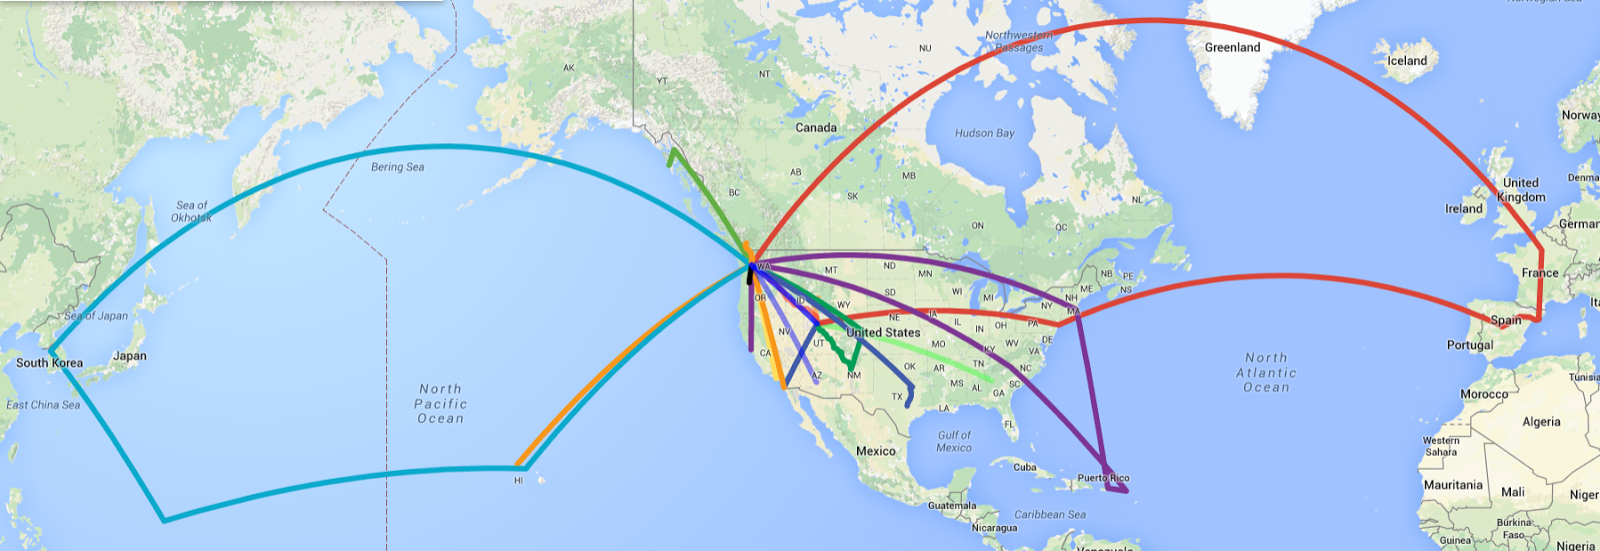 Retracing My Footprints - Us airways travel map